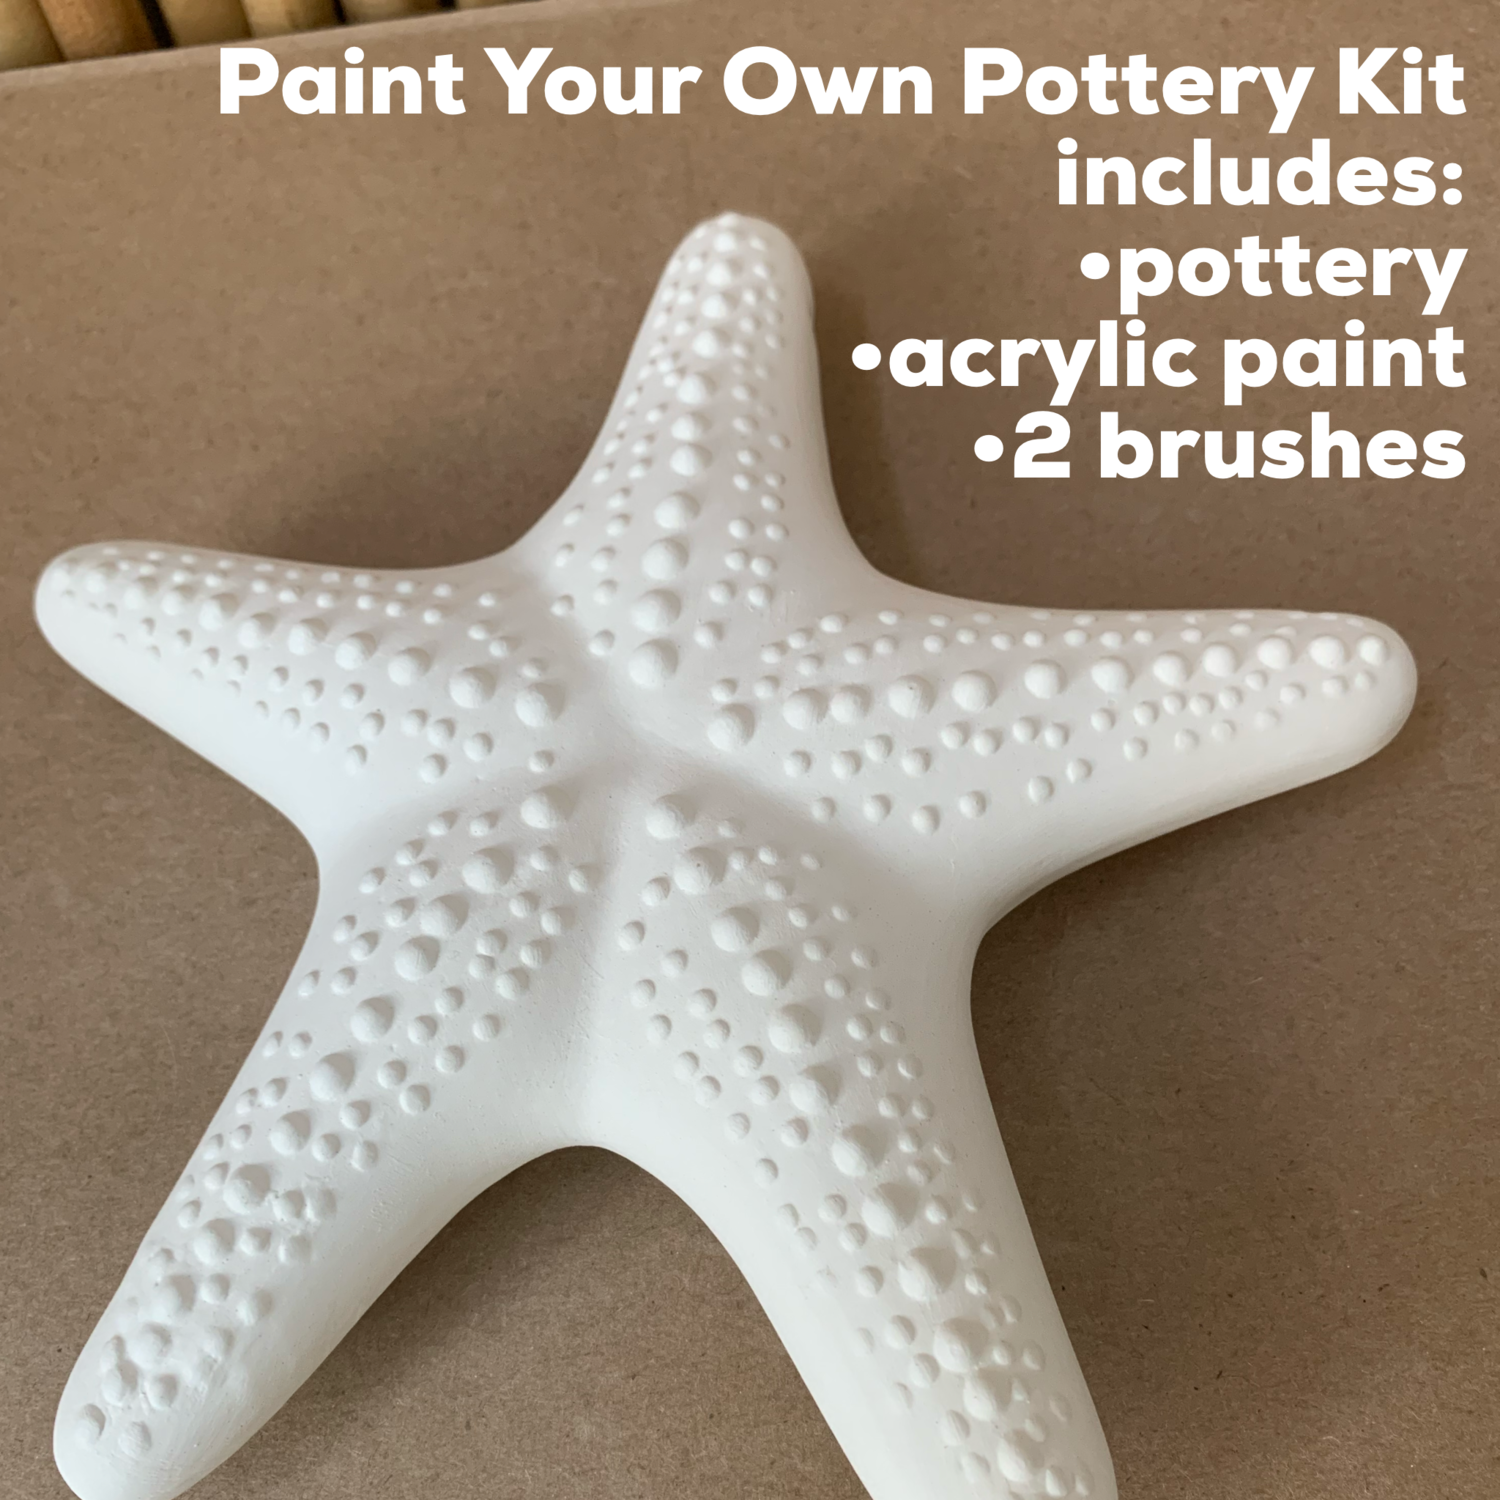 NO FIRE Paint Your Own Pottery Kit -  Ceramic Hanging Starfish Acrylic Painting Kit